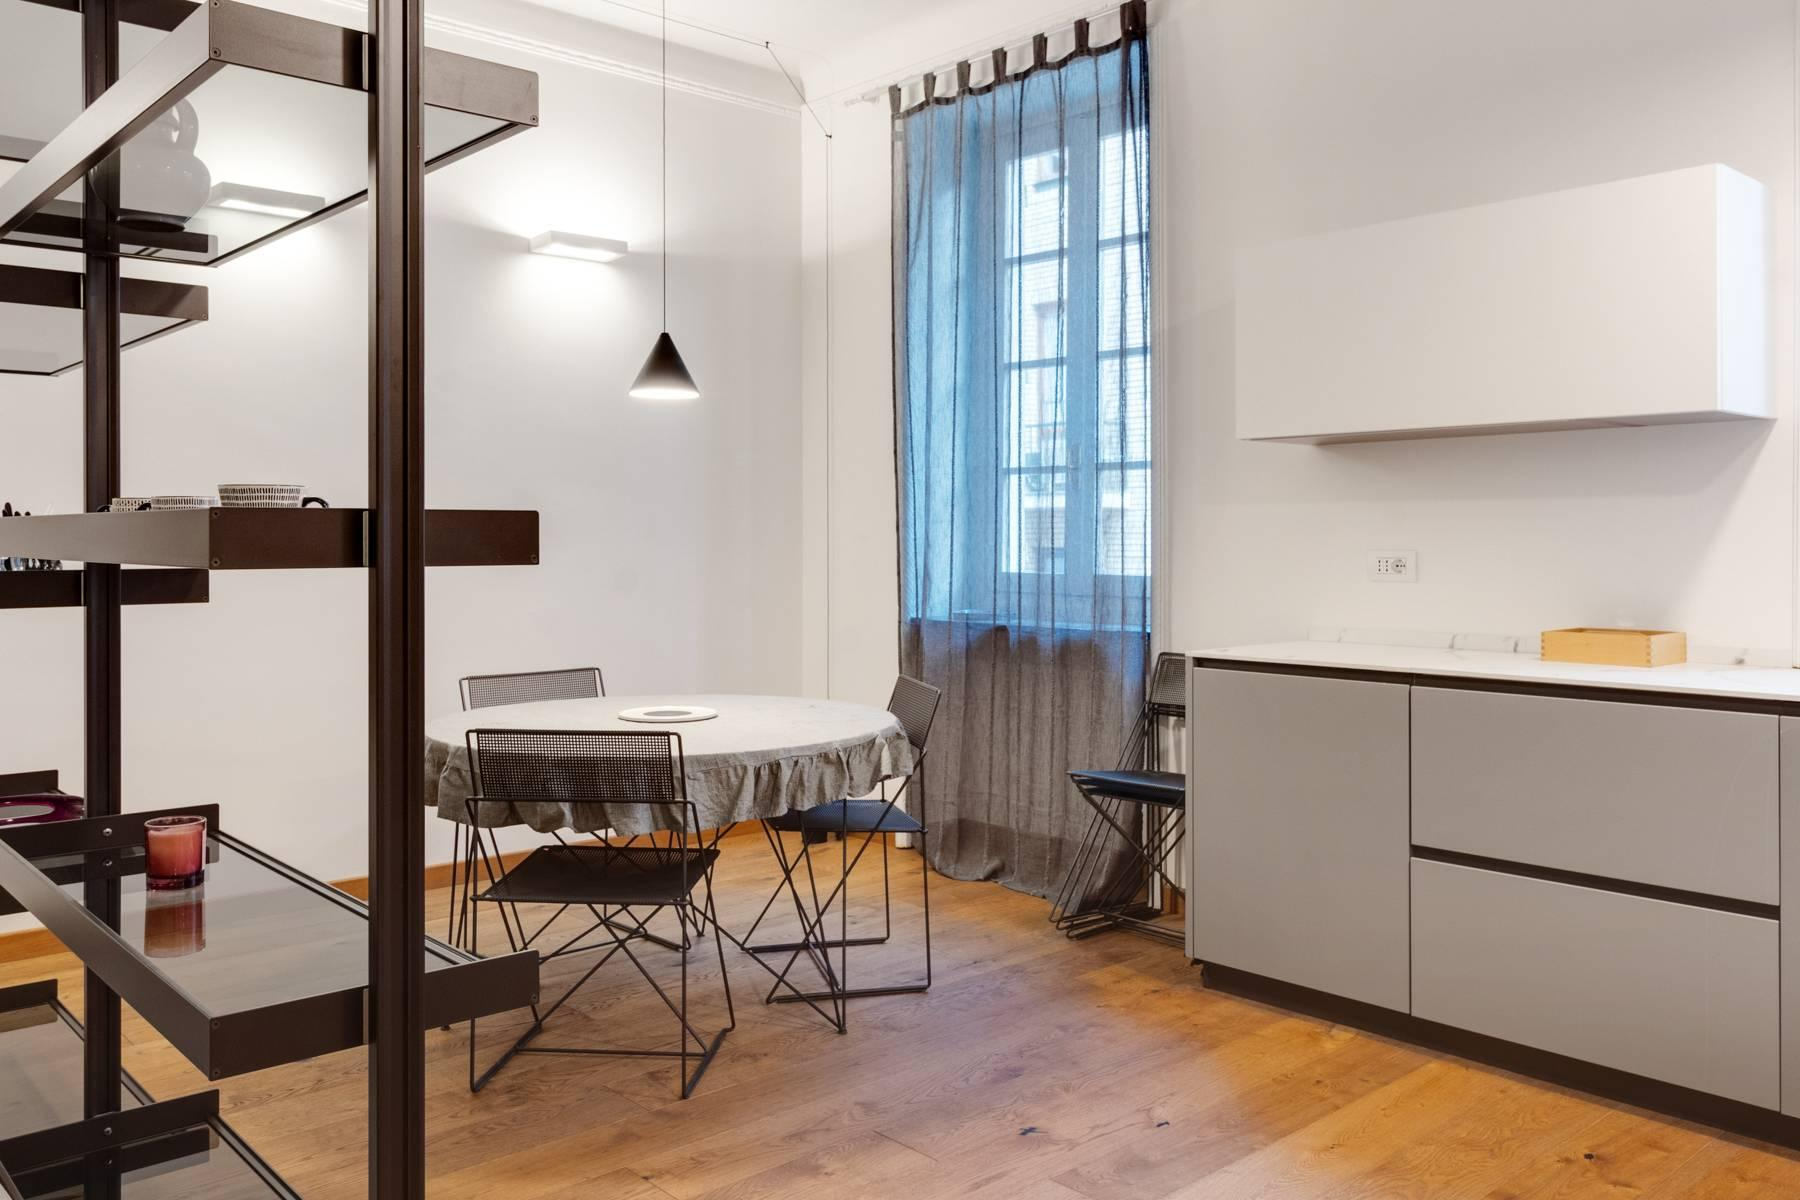 New apartment fully furnished in the center of Turin - 7